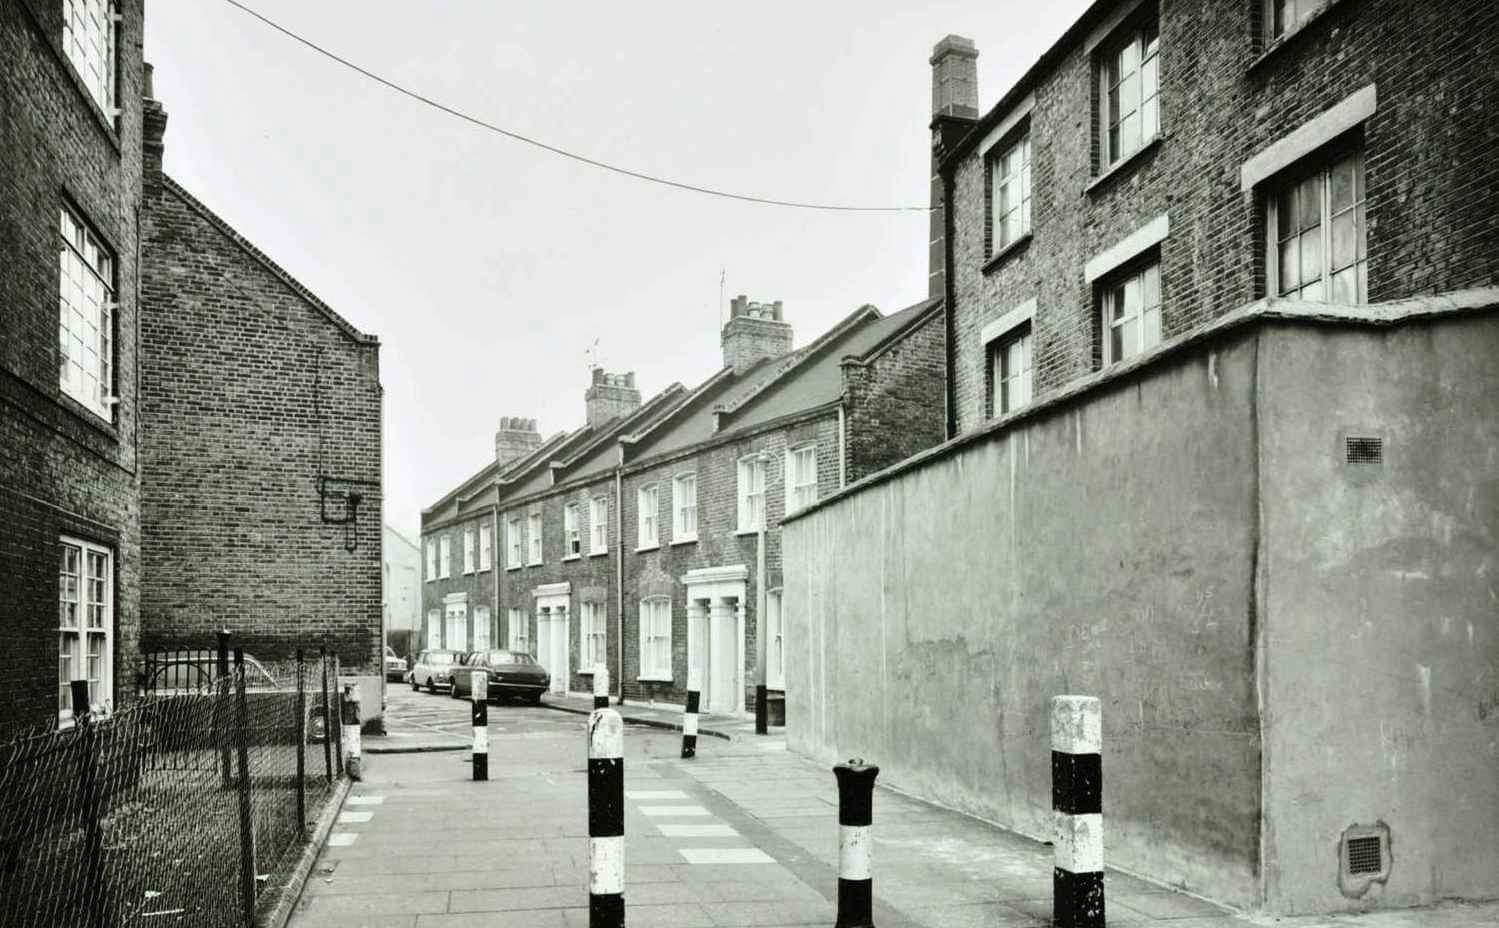 BRUNSWICK COURT 1974 LOOKING FROM TANNER STREET.jpg